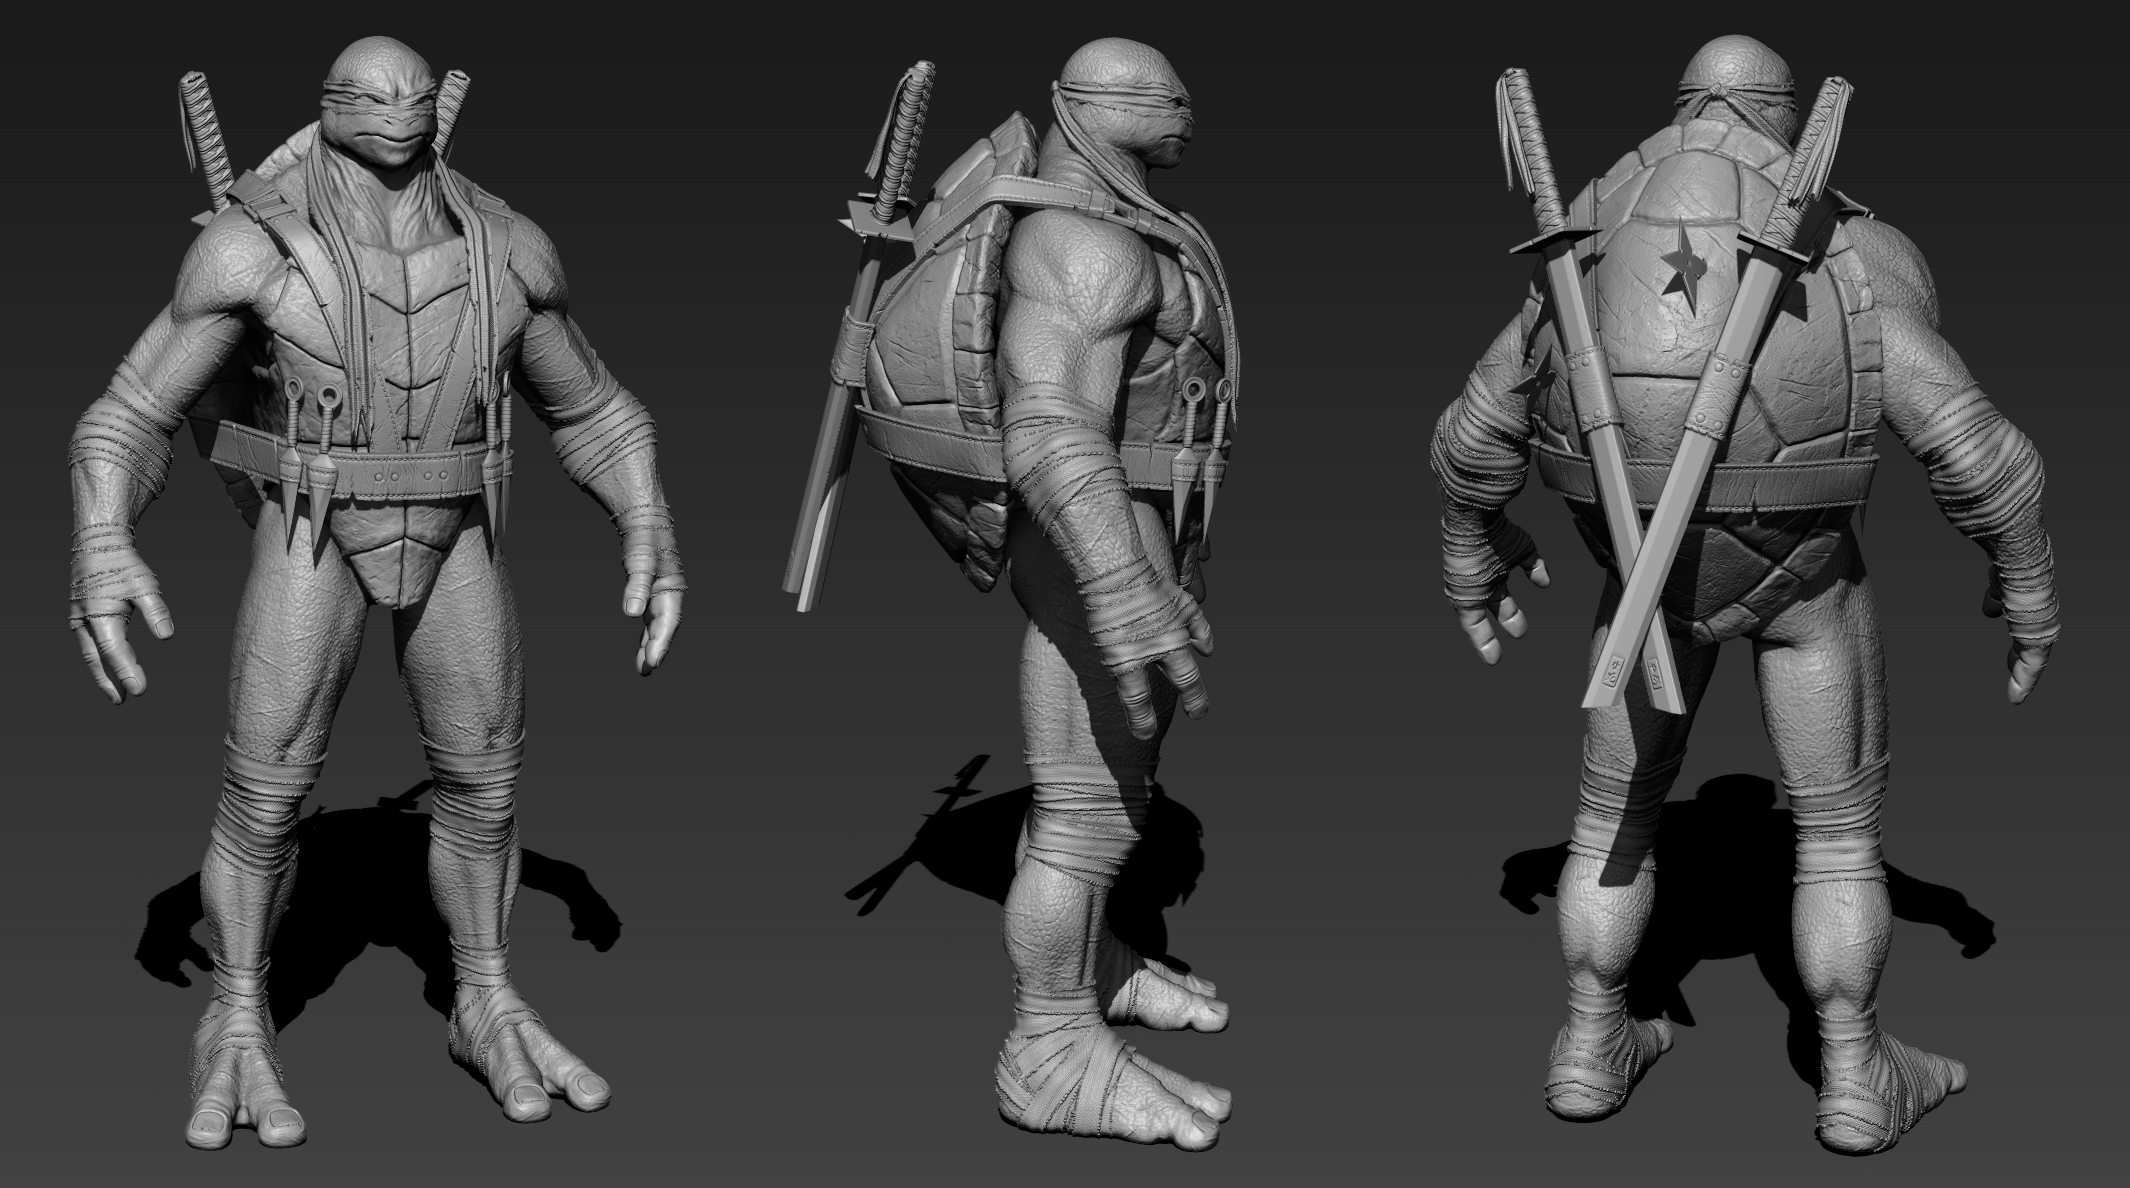 tmnt_leonardo___high_poly_by_j_l_art-d831zfe.png